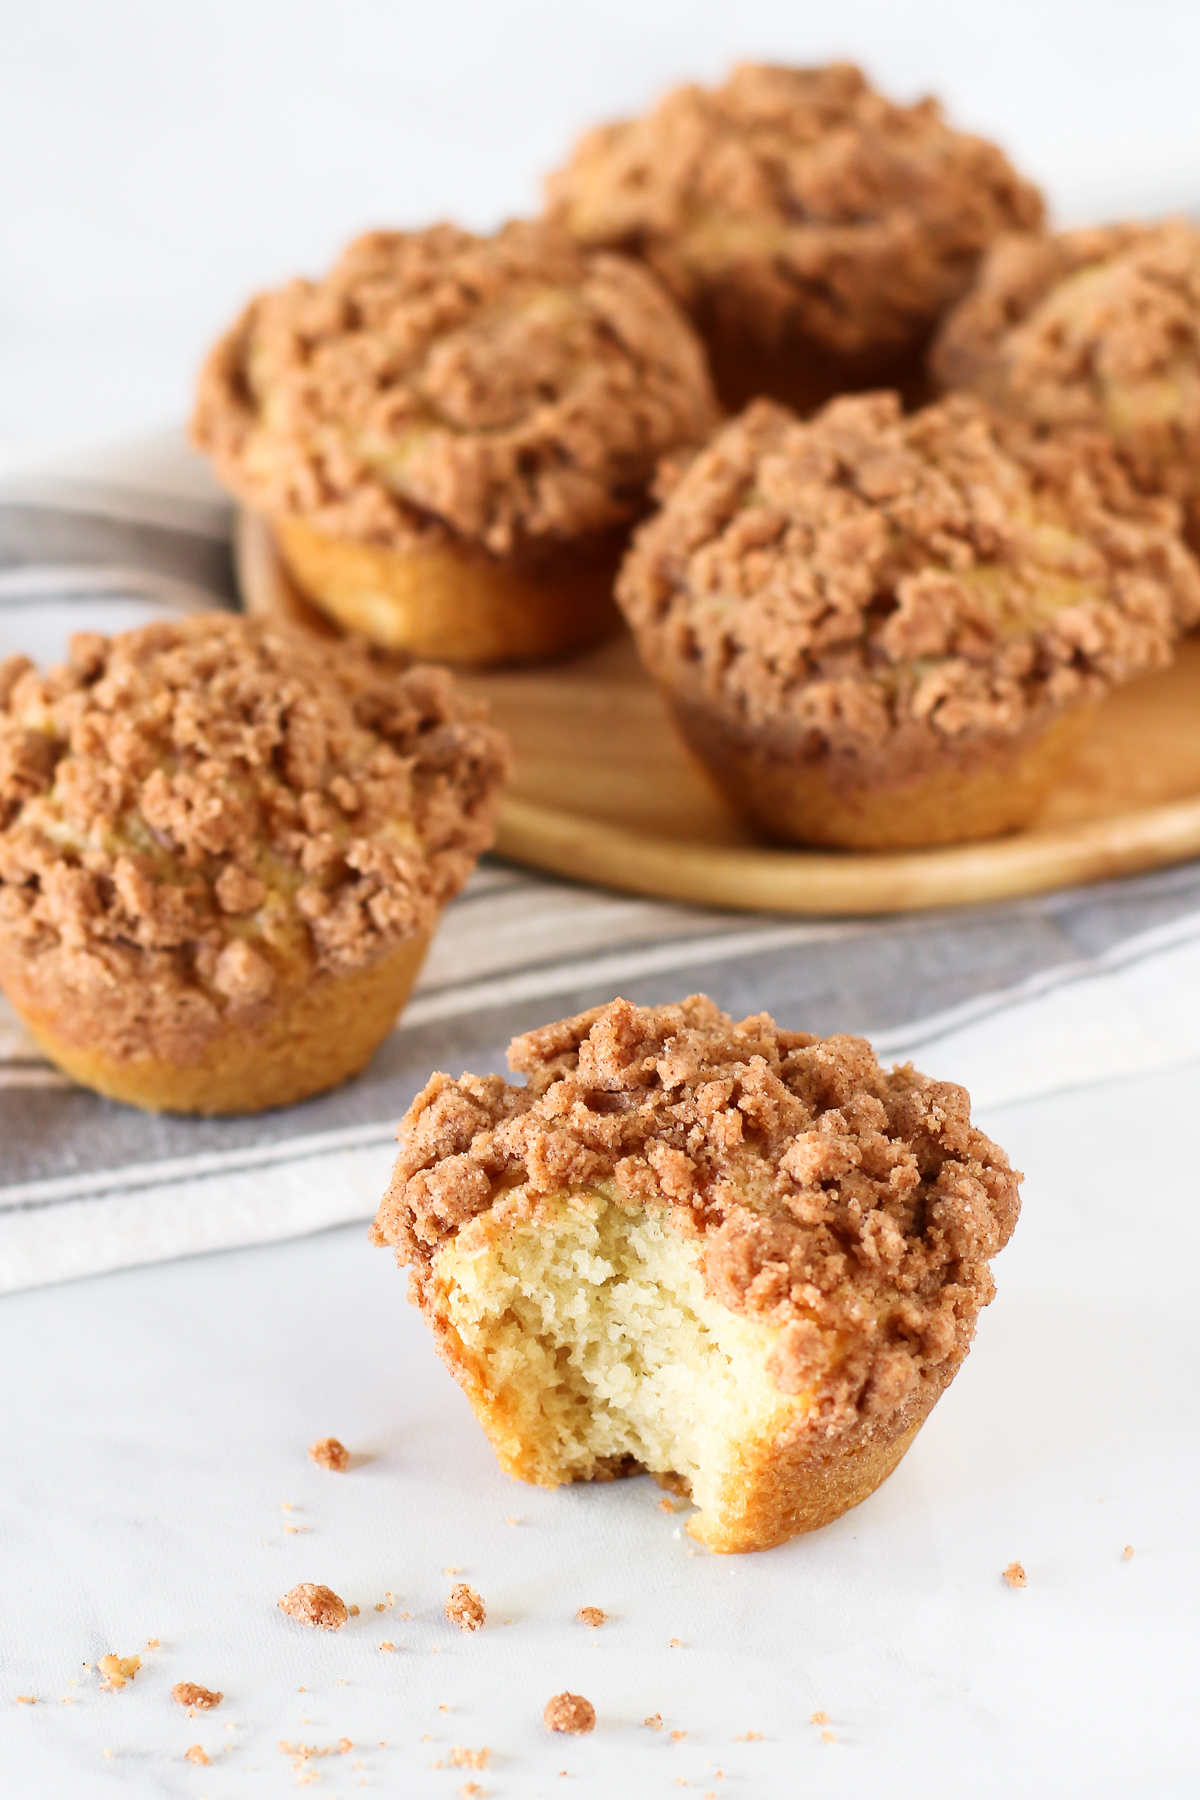 Gluten Free Vegan Coffee Cake Muffins. Fluffy vanilla muffins with a cinnamon crumb topping. Perfectly paired with a cup of coffee or tea!